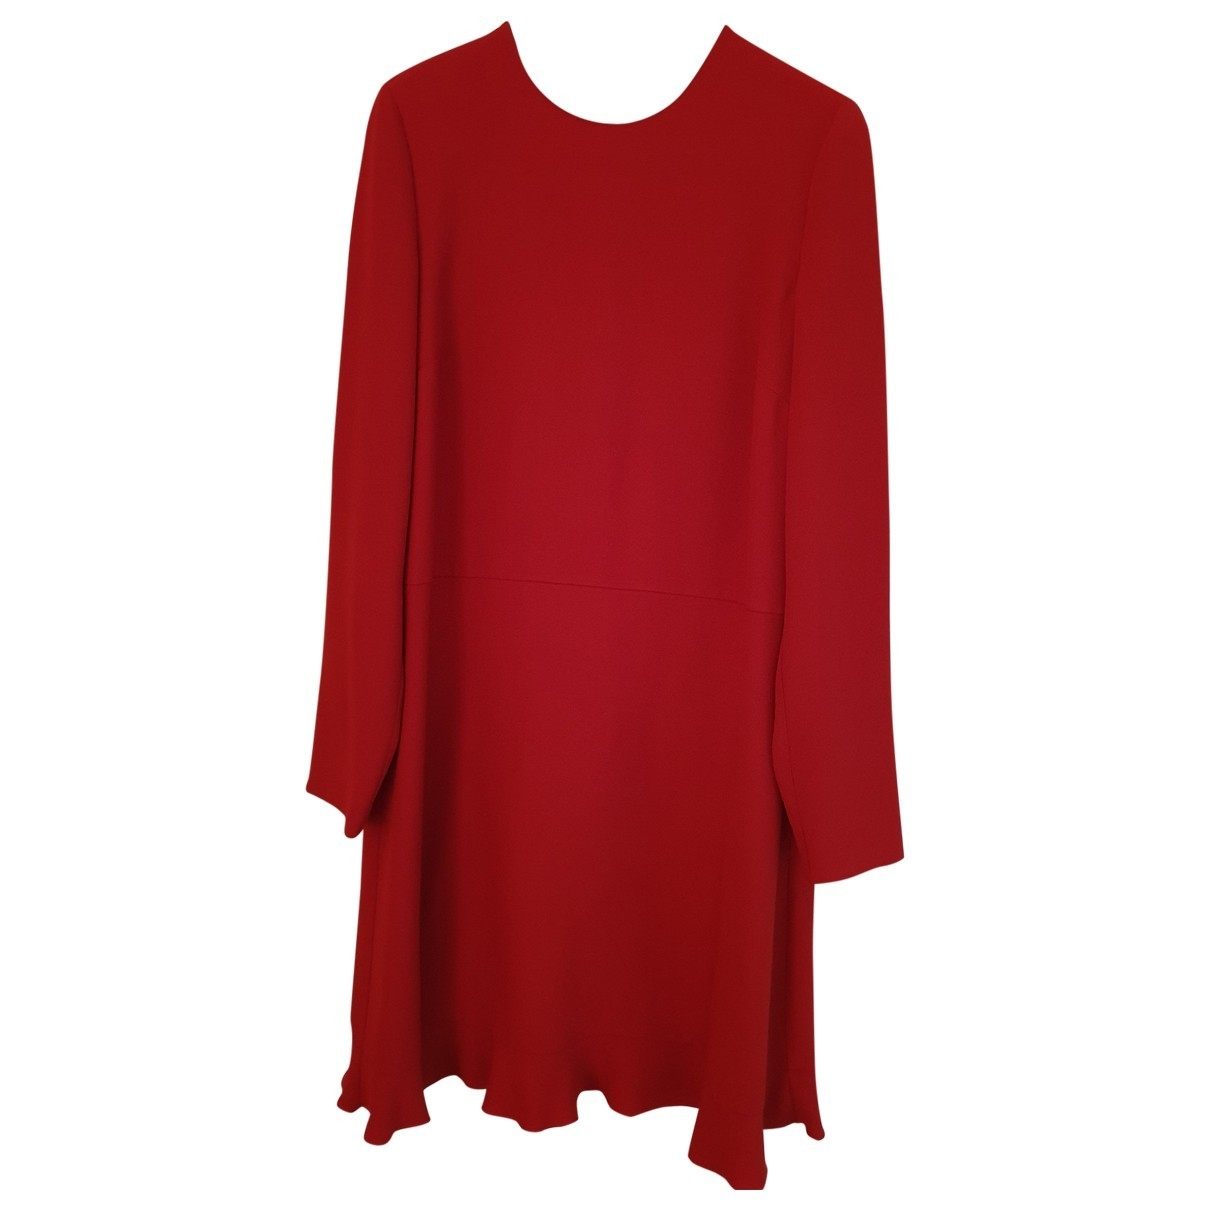 Red Valentino Garavani \N Red dress for Women 40 IT